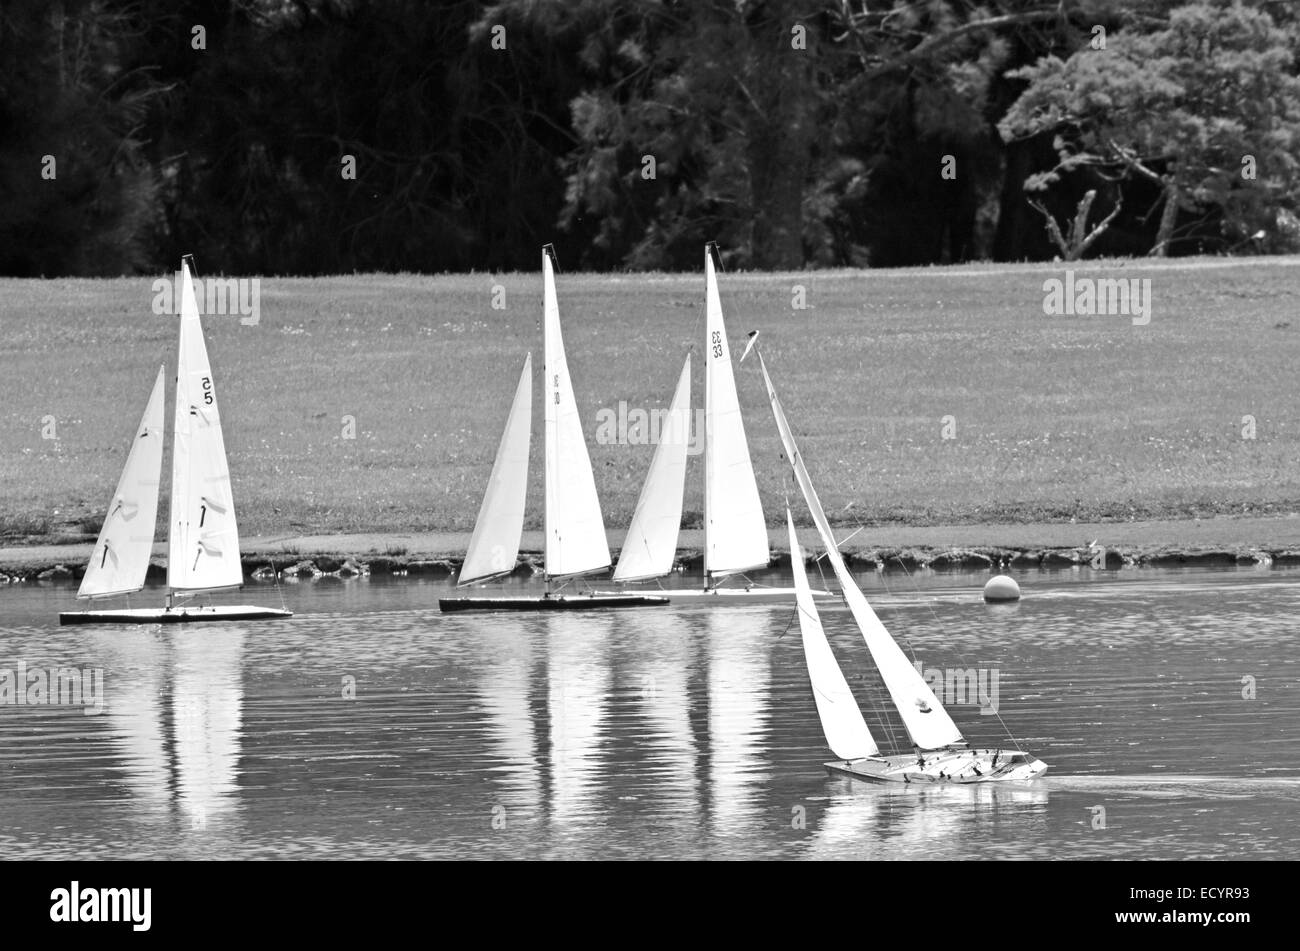 Remote controlled sailing wooden yachts sail in a pond - Stock Image